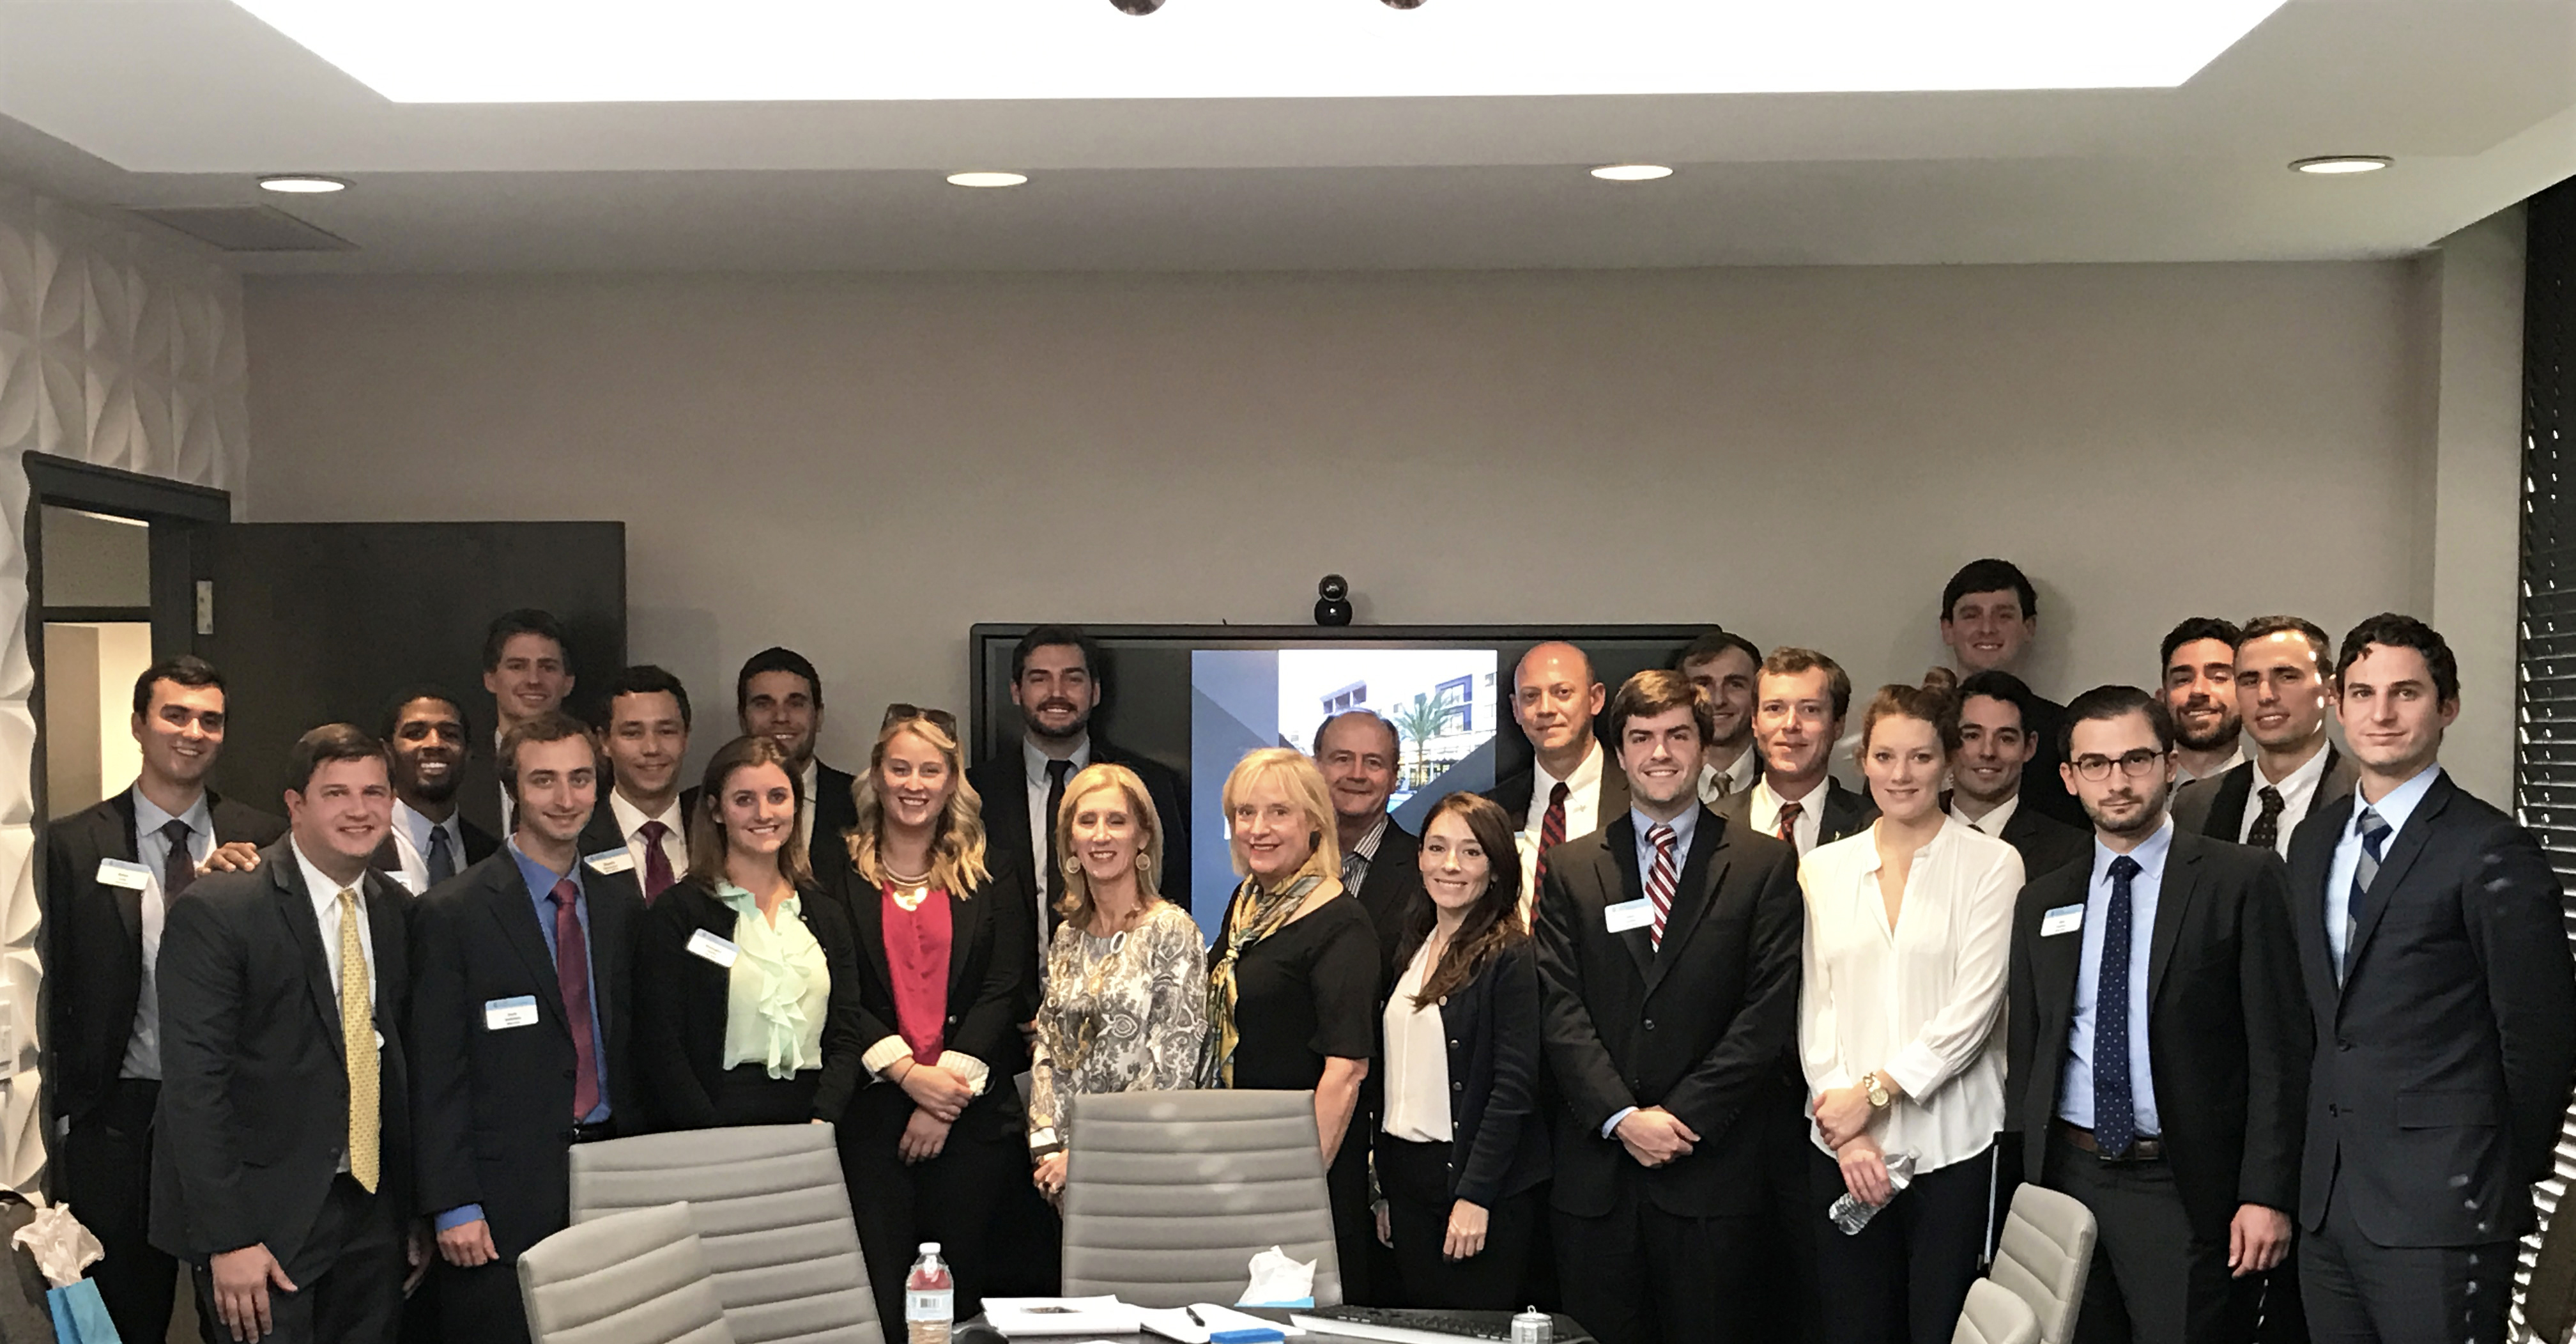 The Preiss Company New Business Development Leadership hosts students from the UNC Chapel Hill MBA program